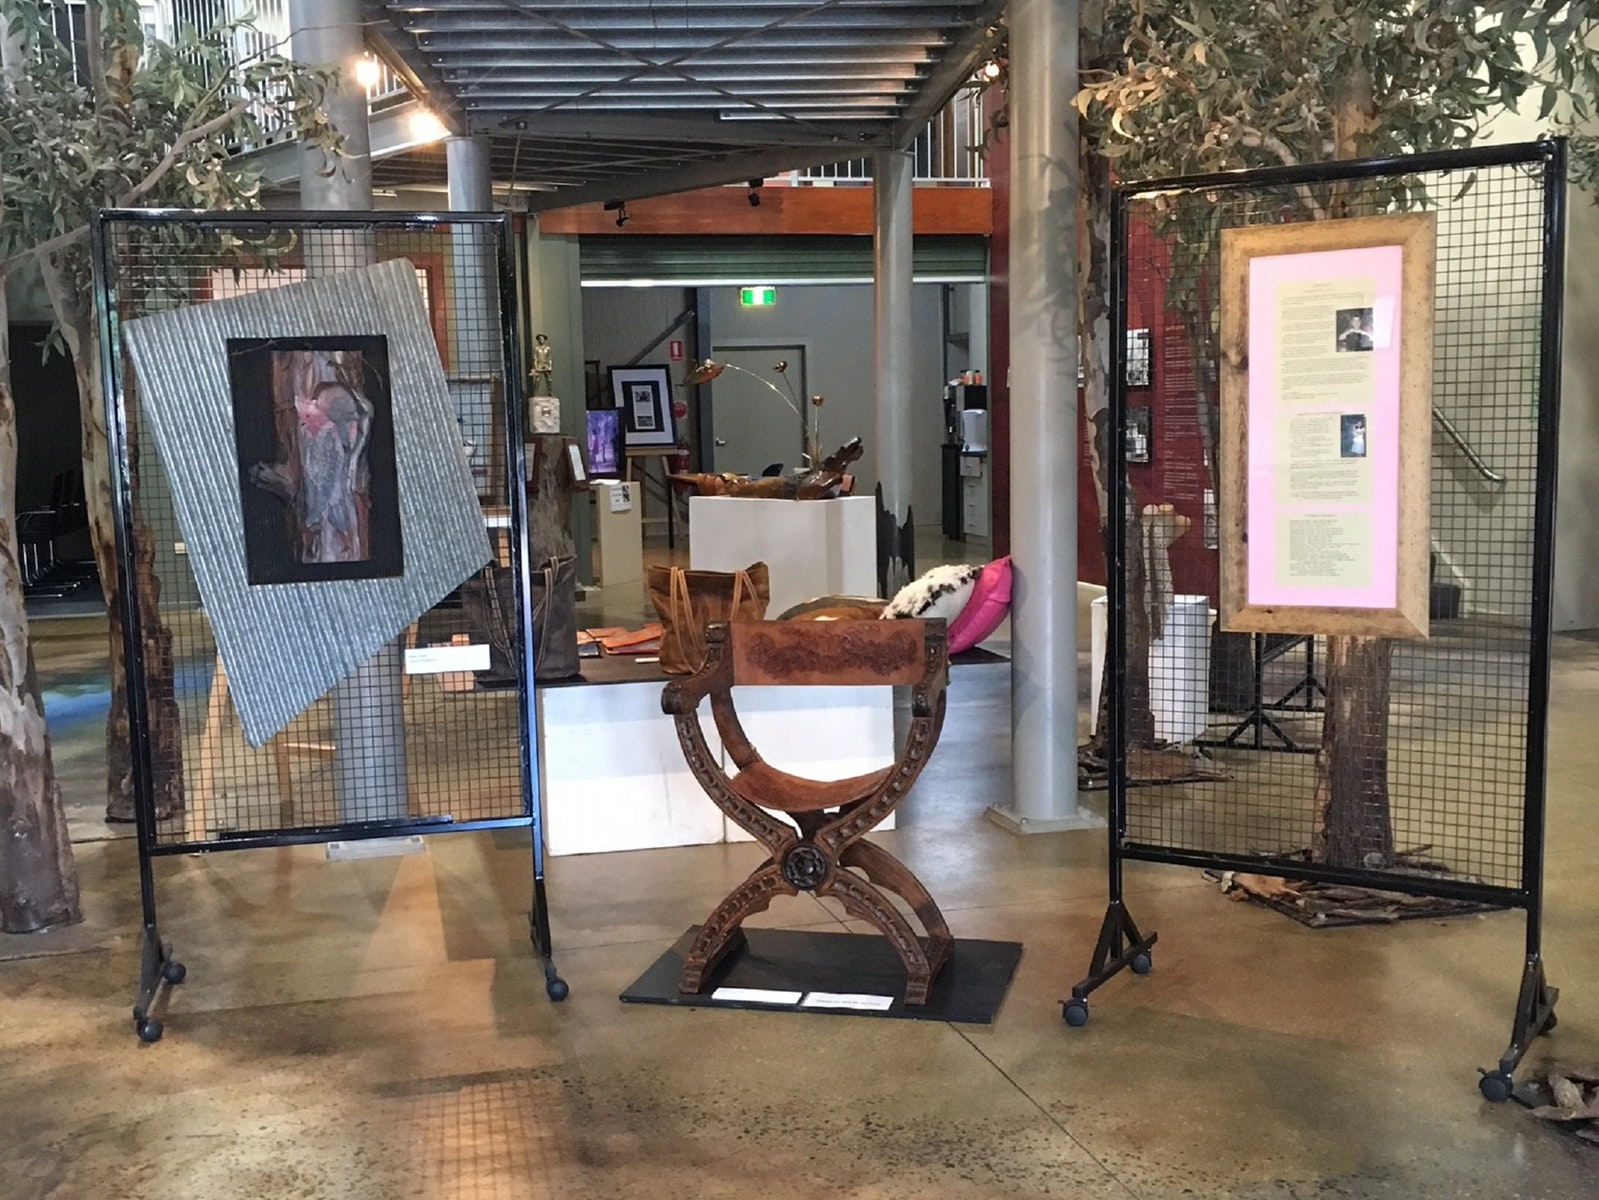 Leather Art - Exhibition at the Nathalia Barmah Visitor Information Centre